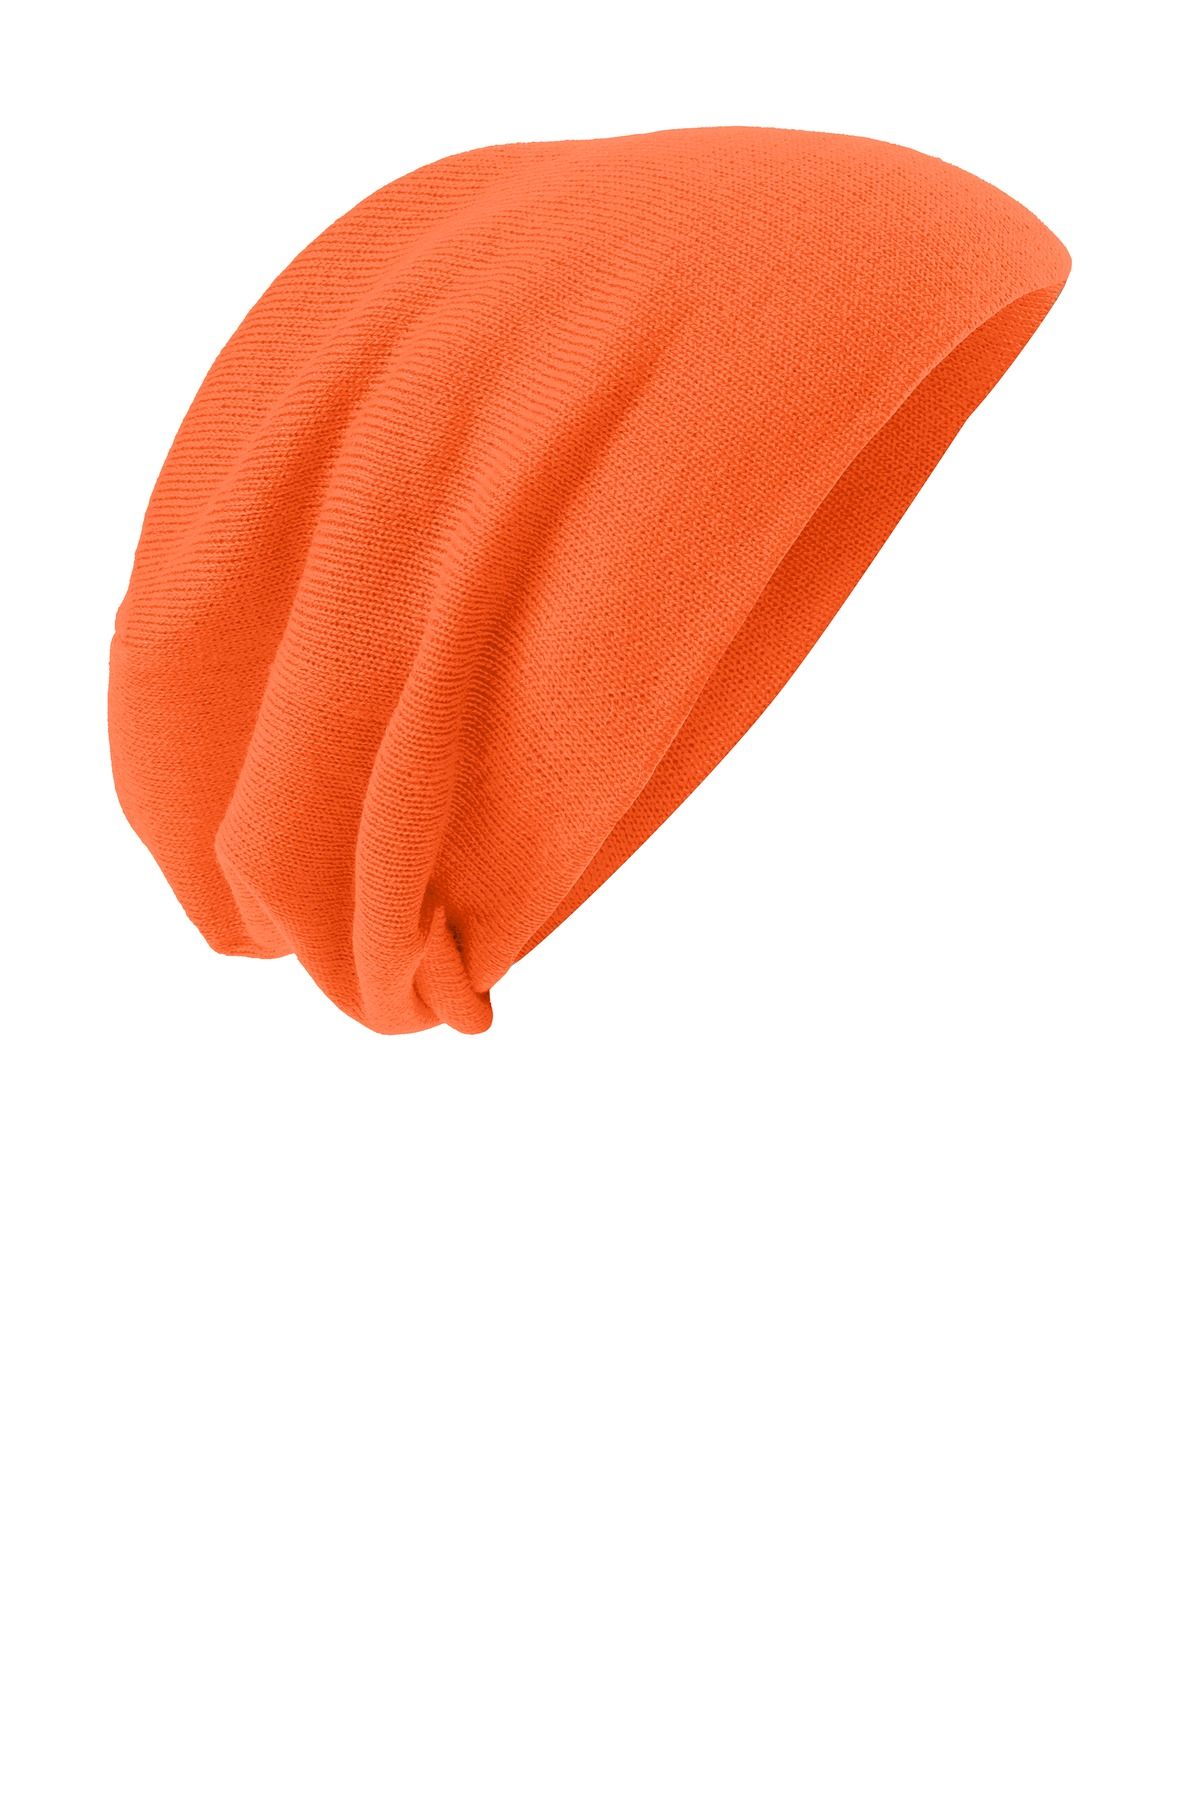 District ®  Slouch Beanie DT618 - Neon Orange